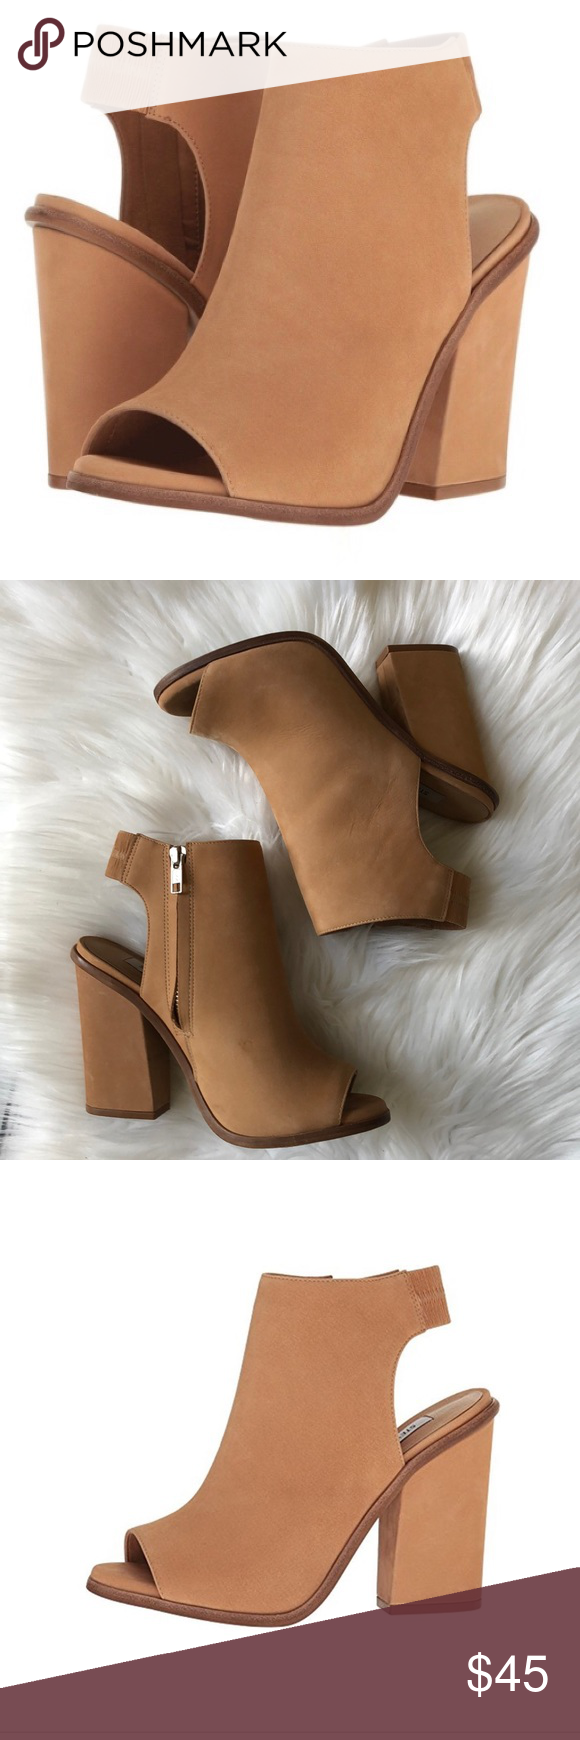 b2908566fb4 Steve Madden® Valencia perp toe bootie Size 7 From day-to-night, the ...